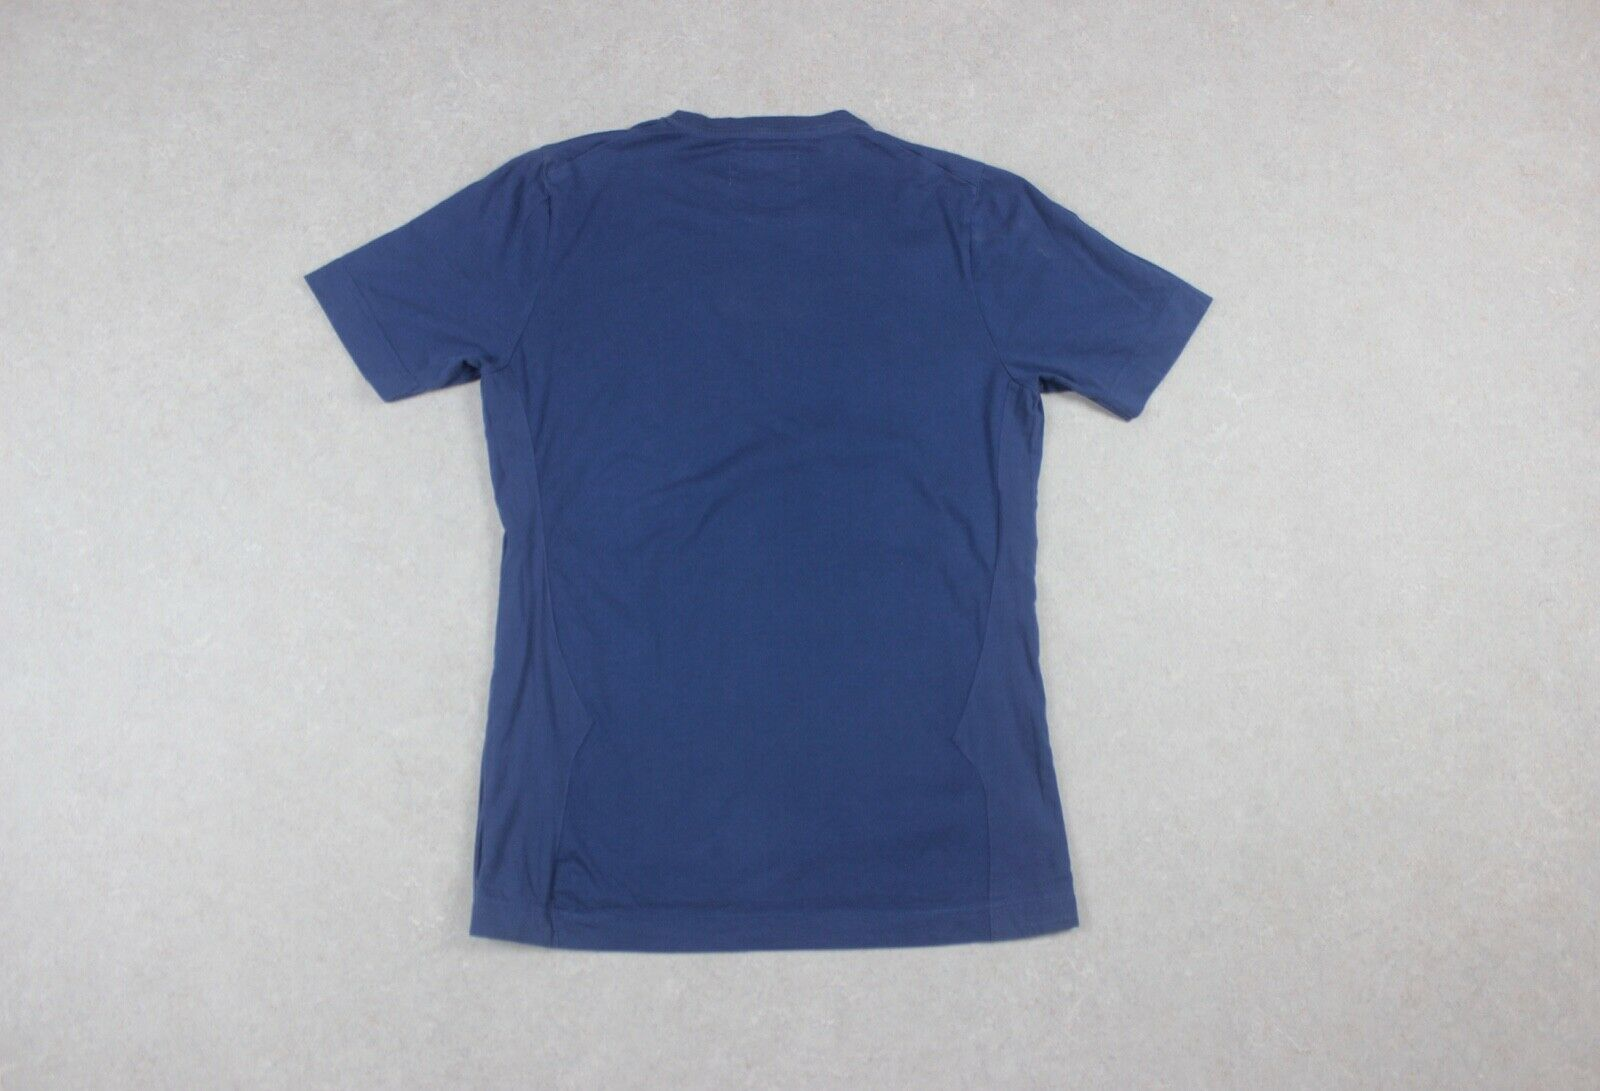 Folk - T Shirt - Blue - 1/Extra Small